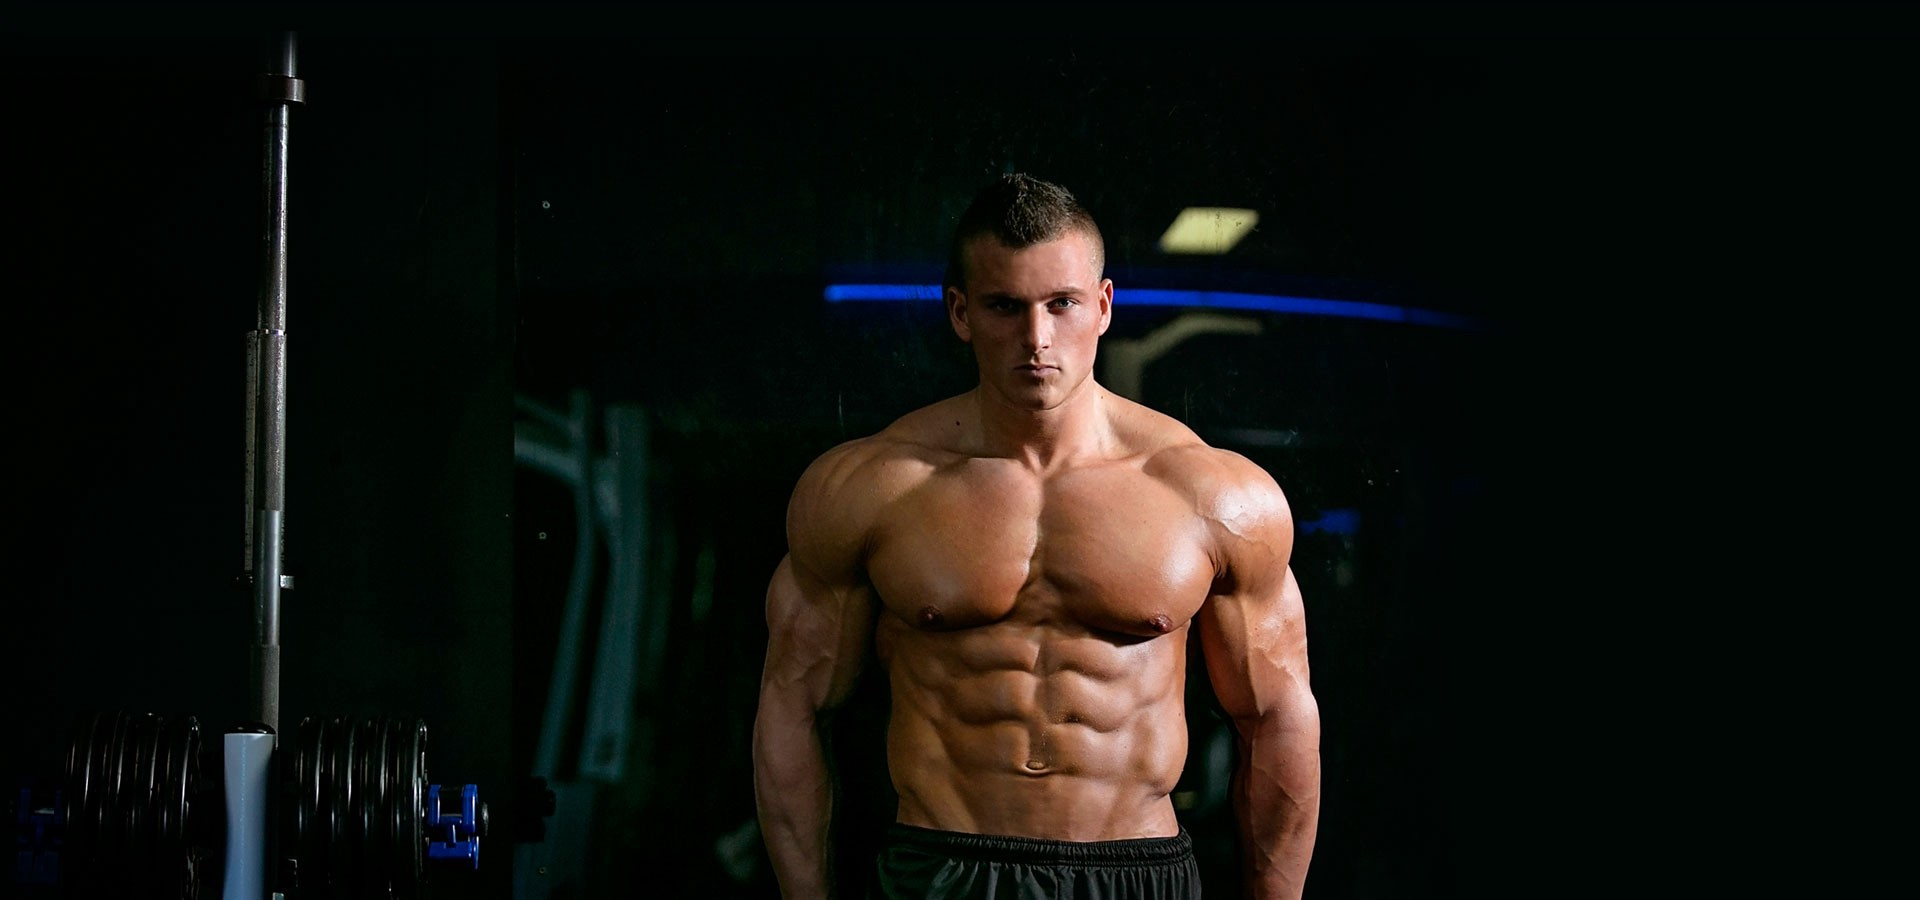 TOP 10 BODYBUILDING EXERCISES YOU CAN DO FOR STRONG MUSCLES